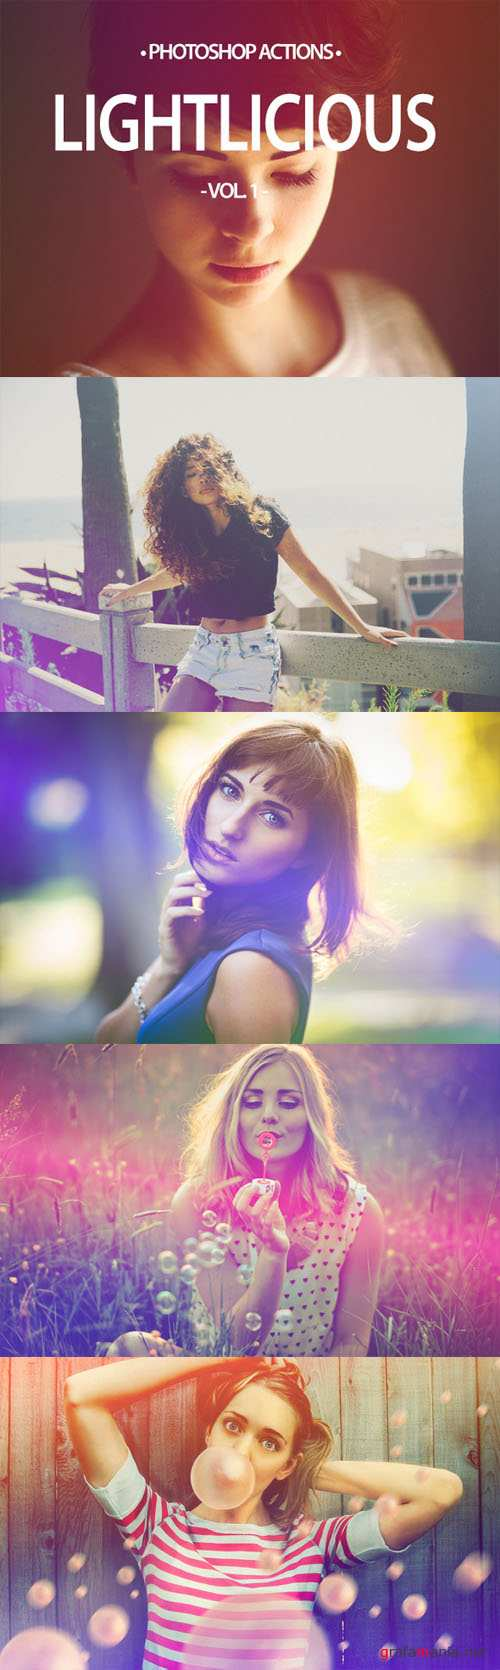 20 Lightlicious - Photoshop Actions